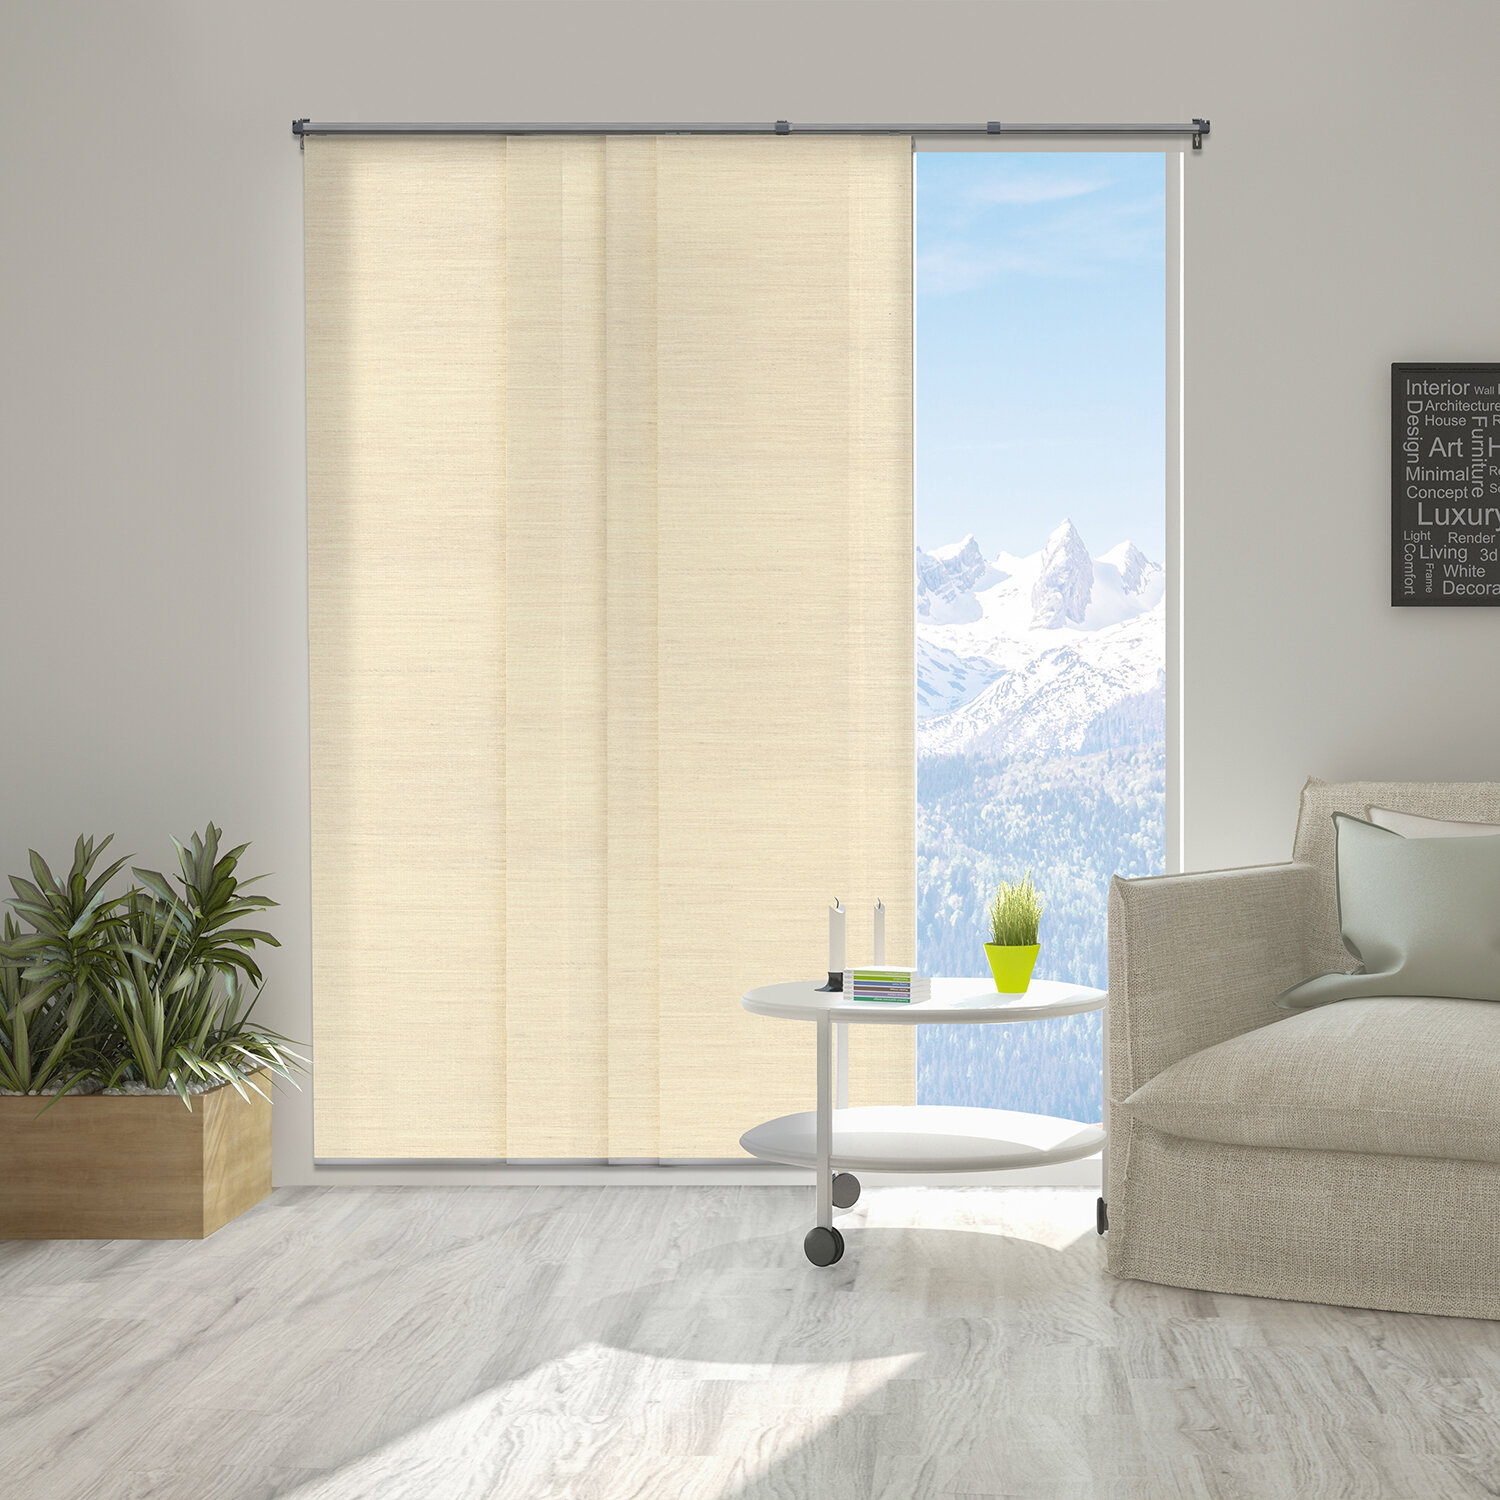 Premium Adjustable Sliding Panels, Cut to Length Vertical Blinds, Florence  Maize (Natural Woven, Up to 80